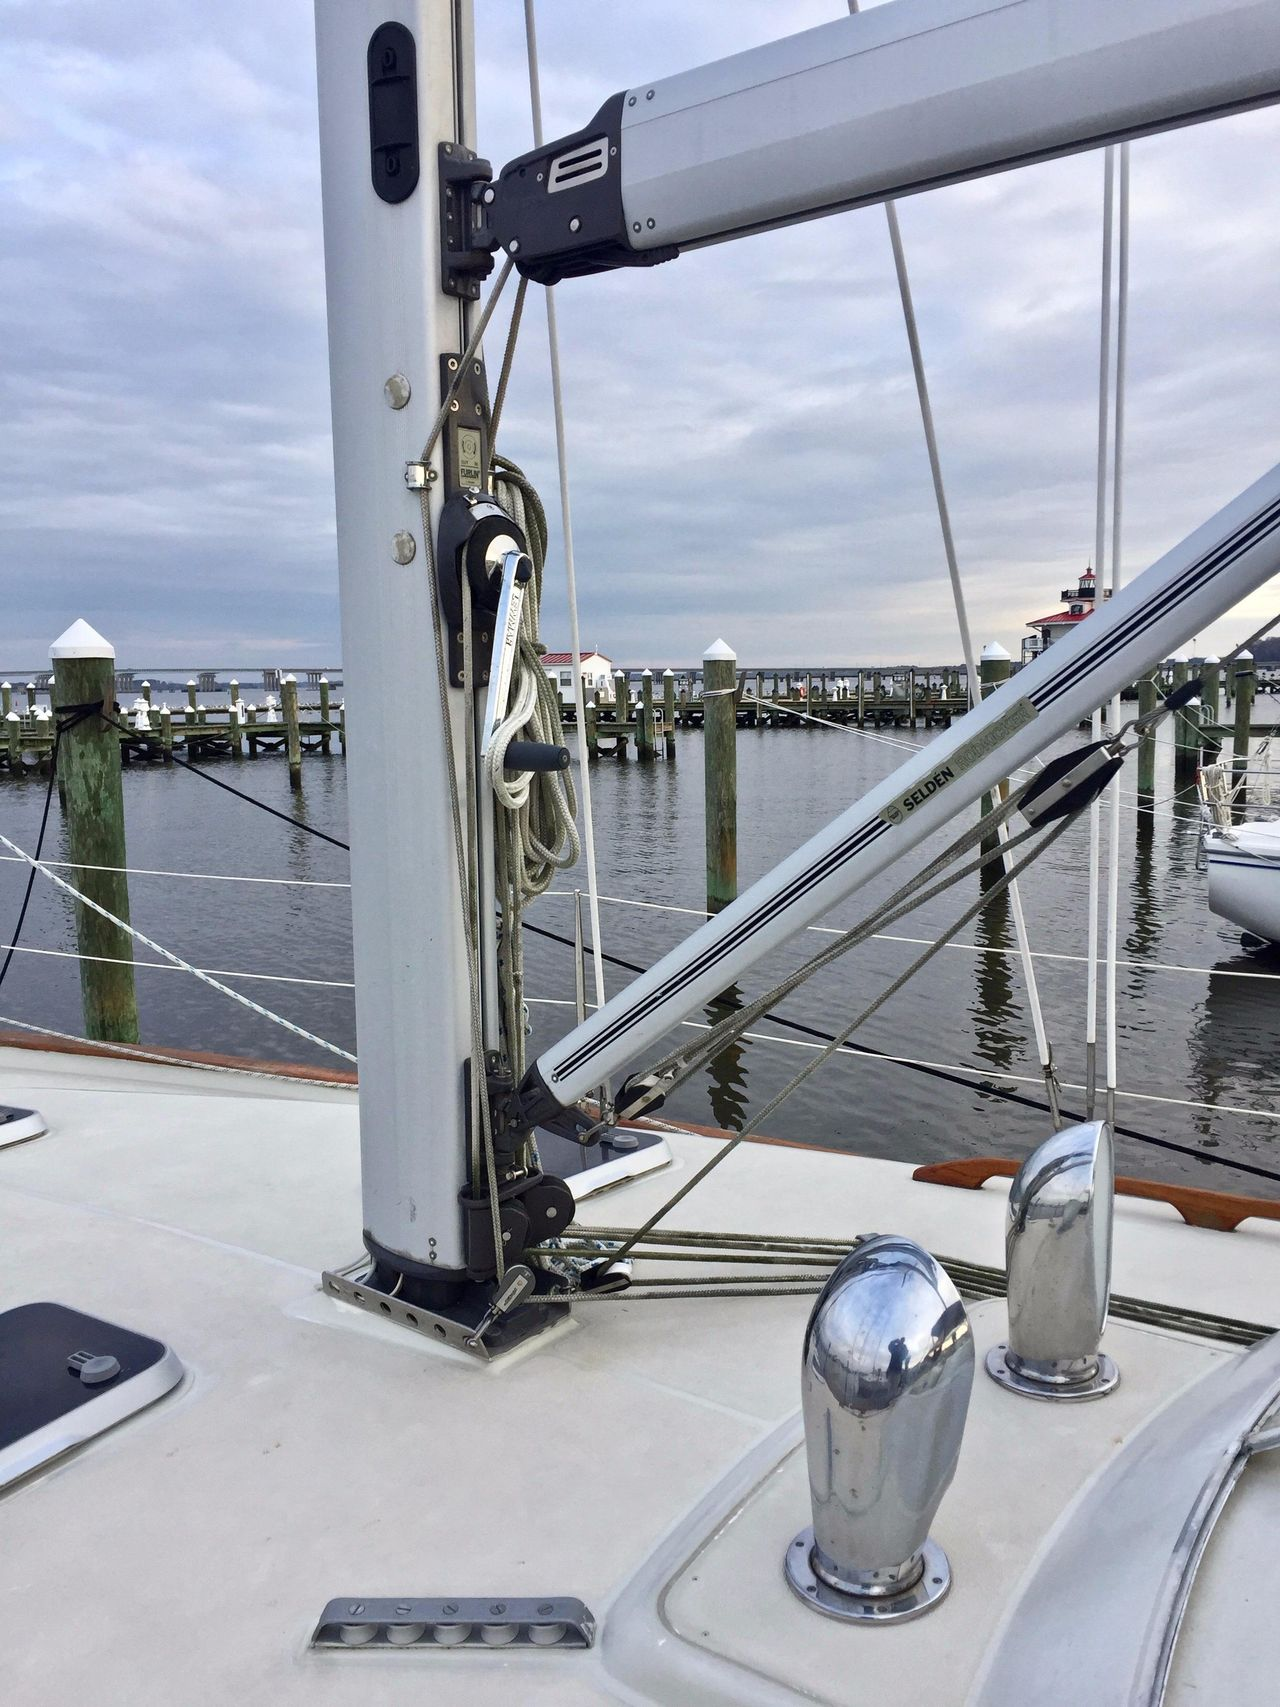 2000 Used Moody 42 Cruiser Sailboat For Sale - $93,000